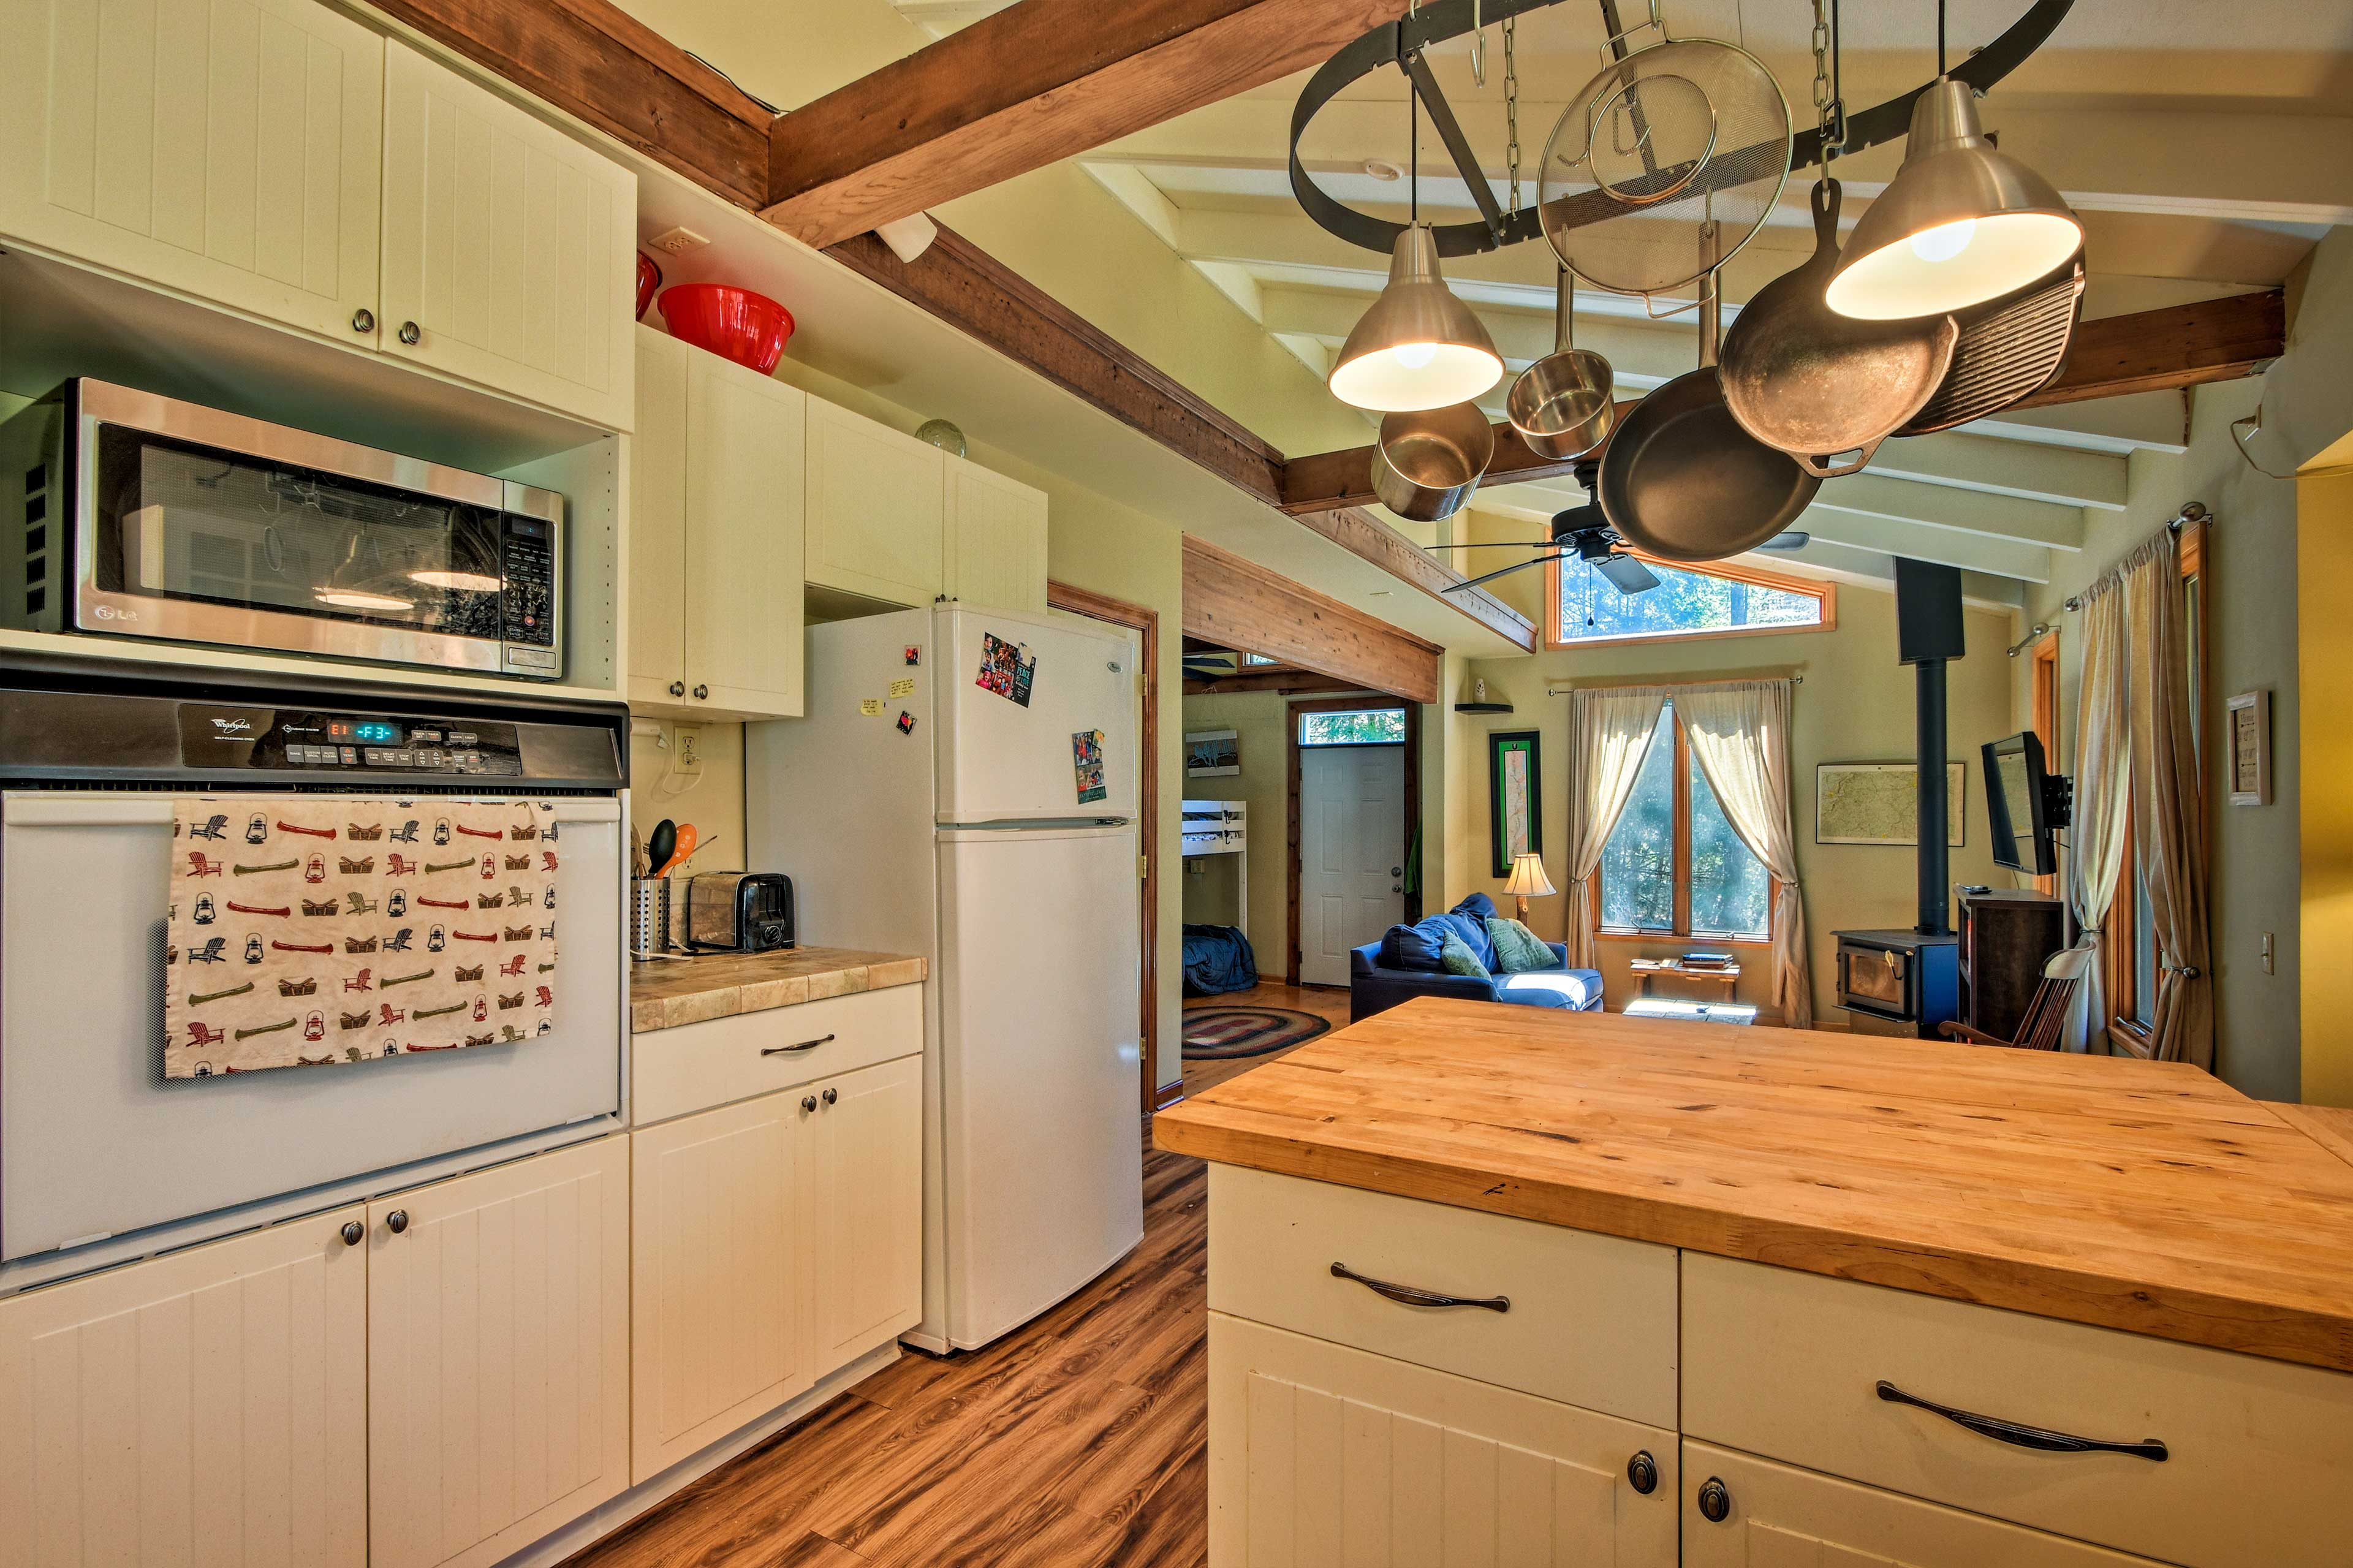 The kitchen is fully equipped for cooking up your signature homemade dish.